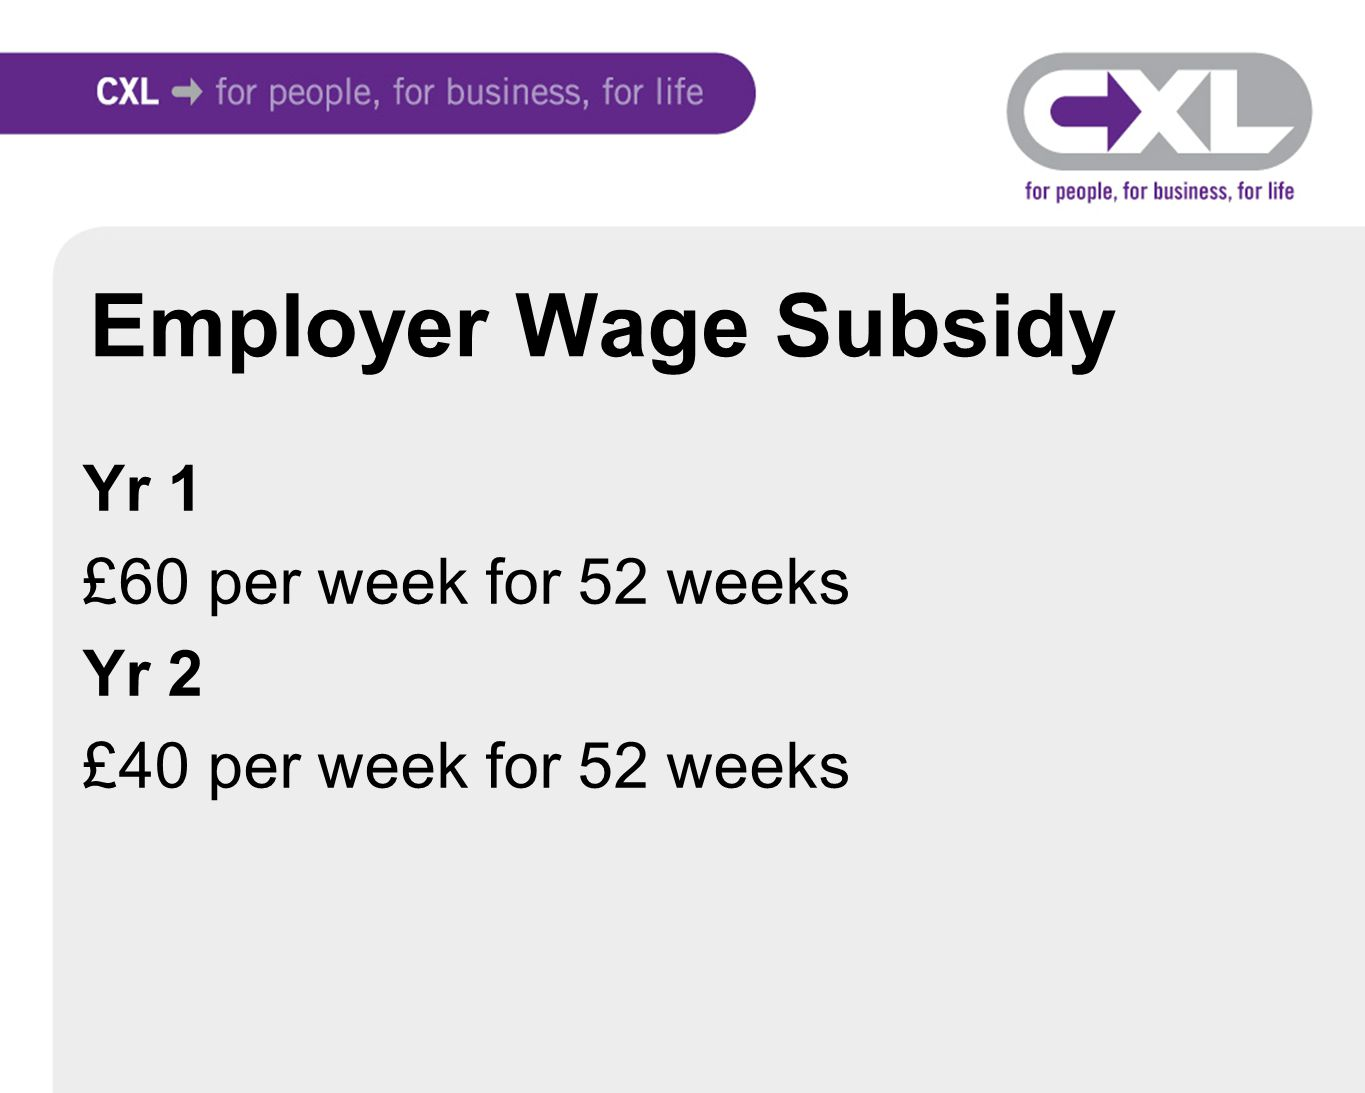 Employer Wage Subsidy Yr 1 £60 per week for 52 weeks Yr 2 £40 per week for 52 weeks